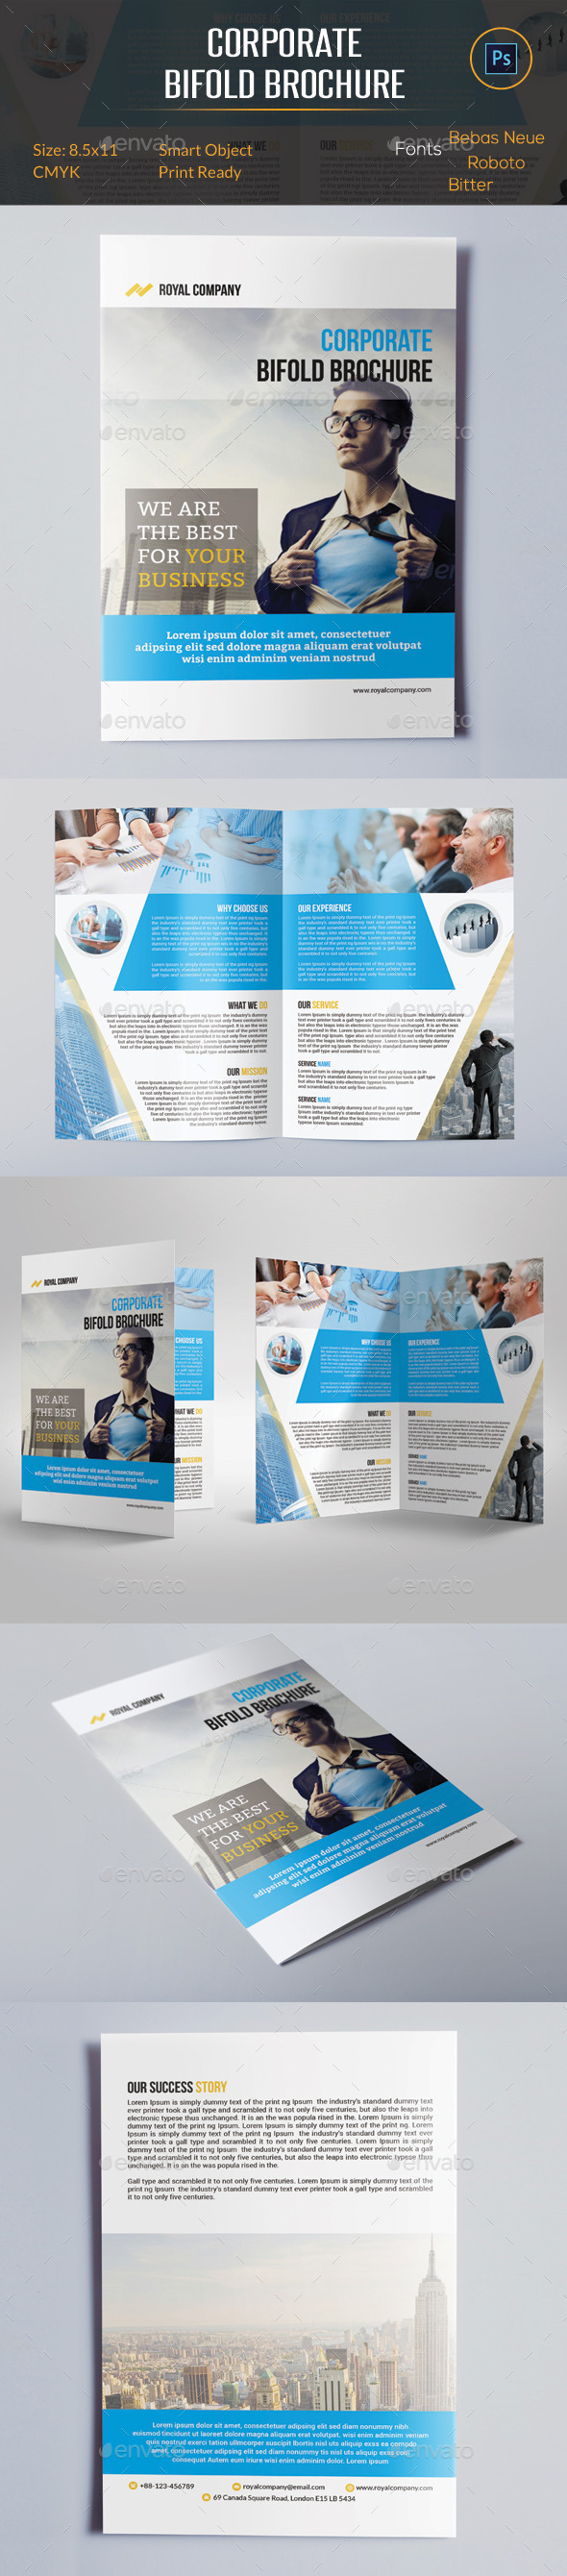 GraphicRiver Corporate Bifold Brochure 10599425